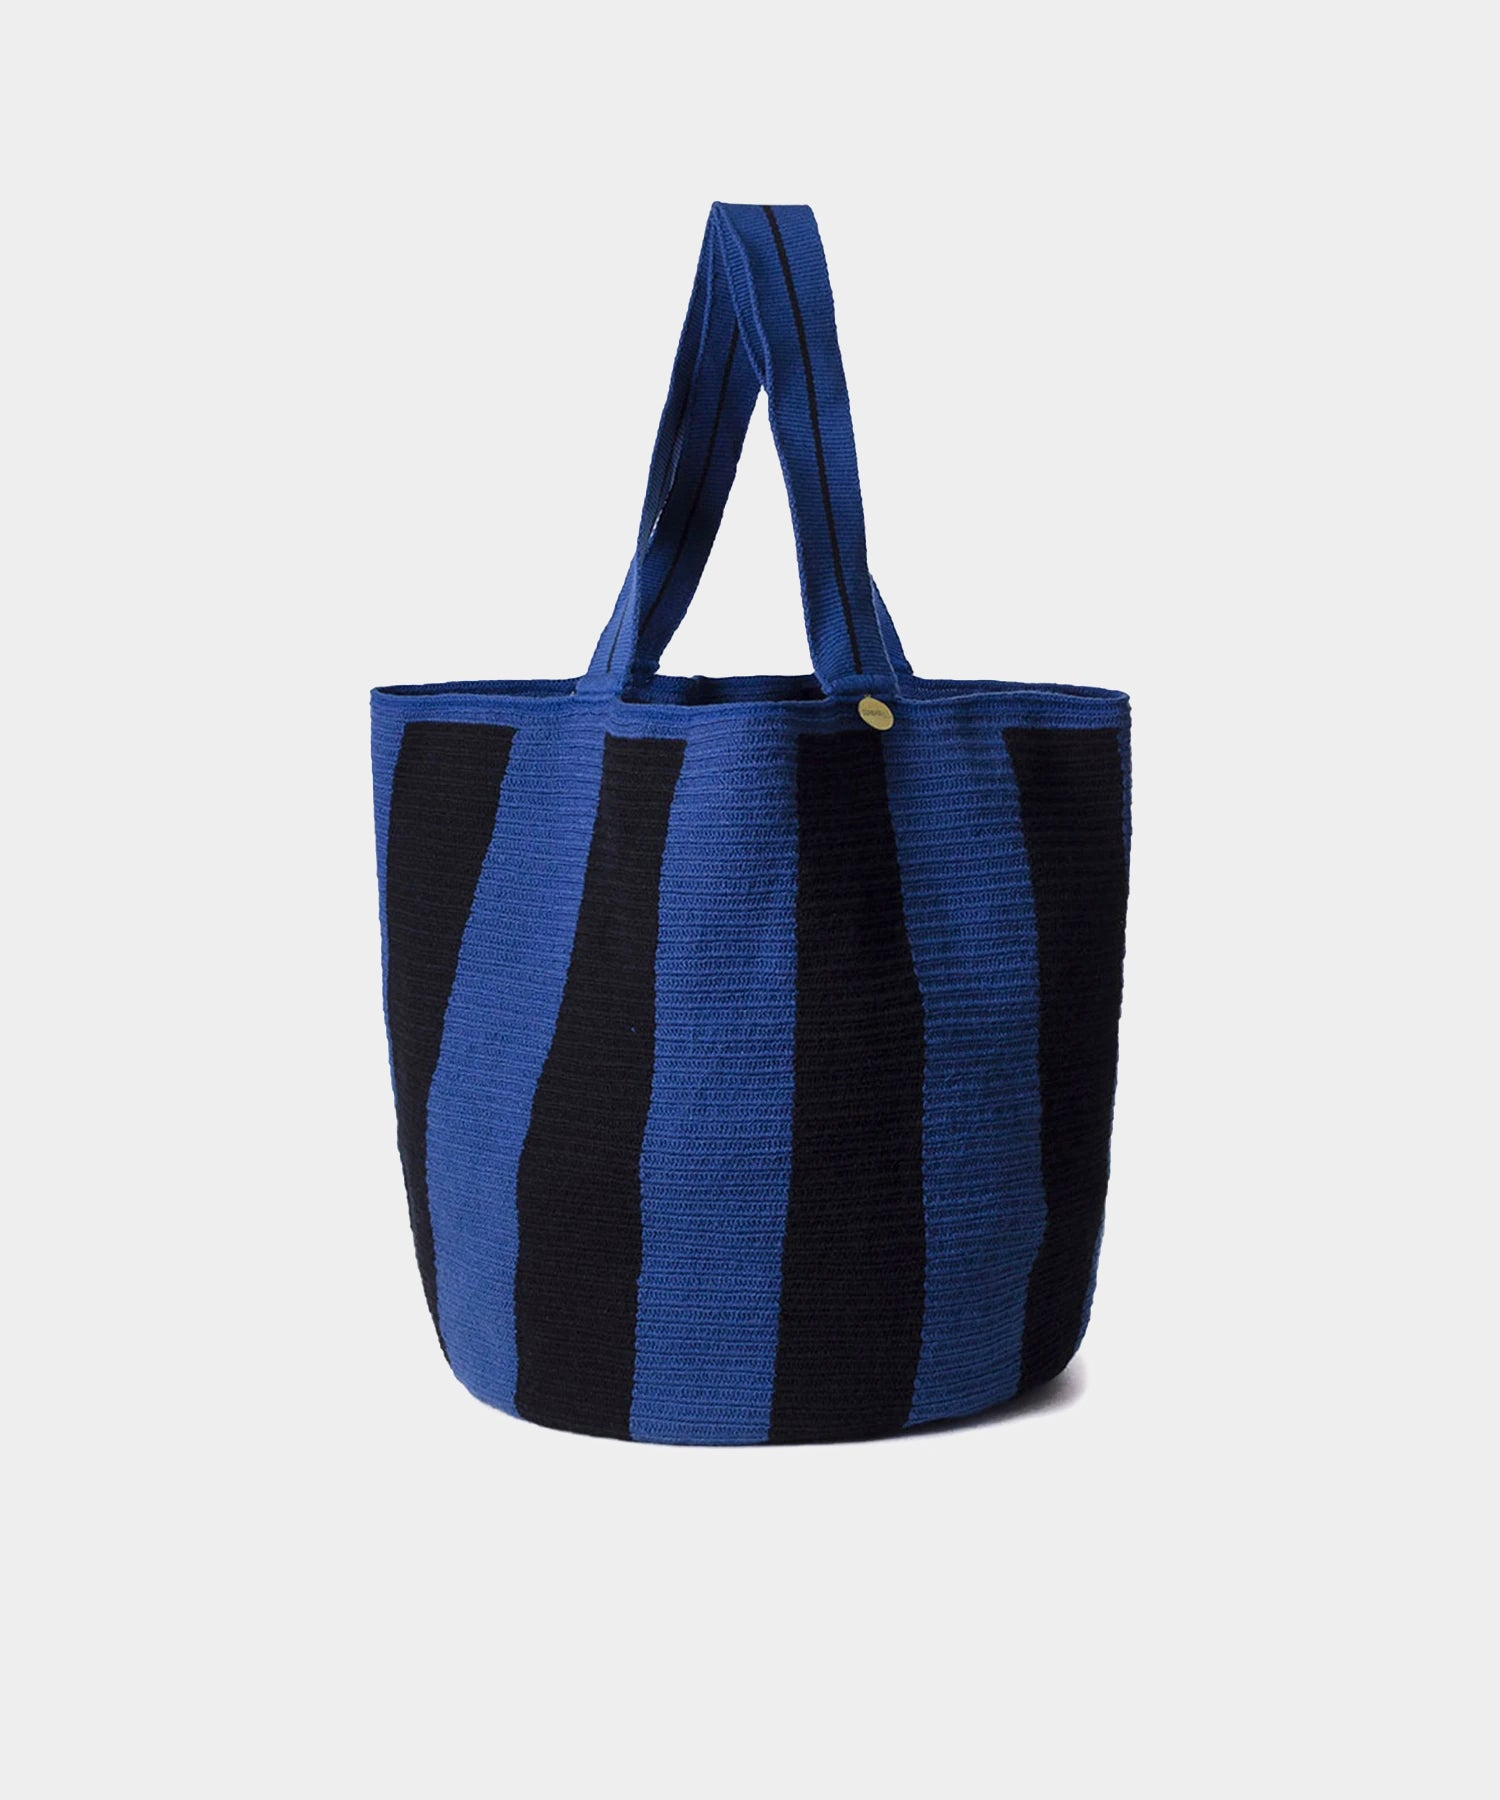 Guanábana Handmade Beach Bag Blue & Black Stripe